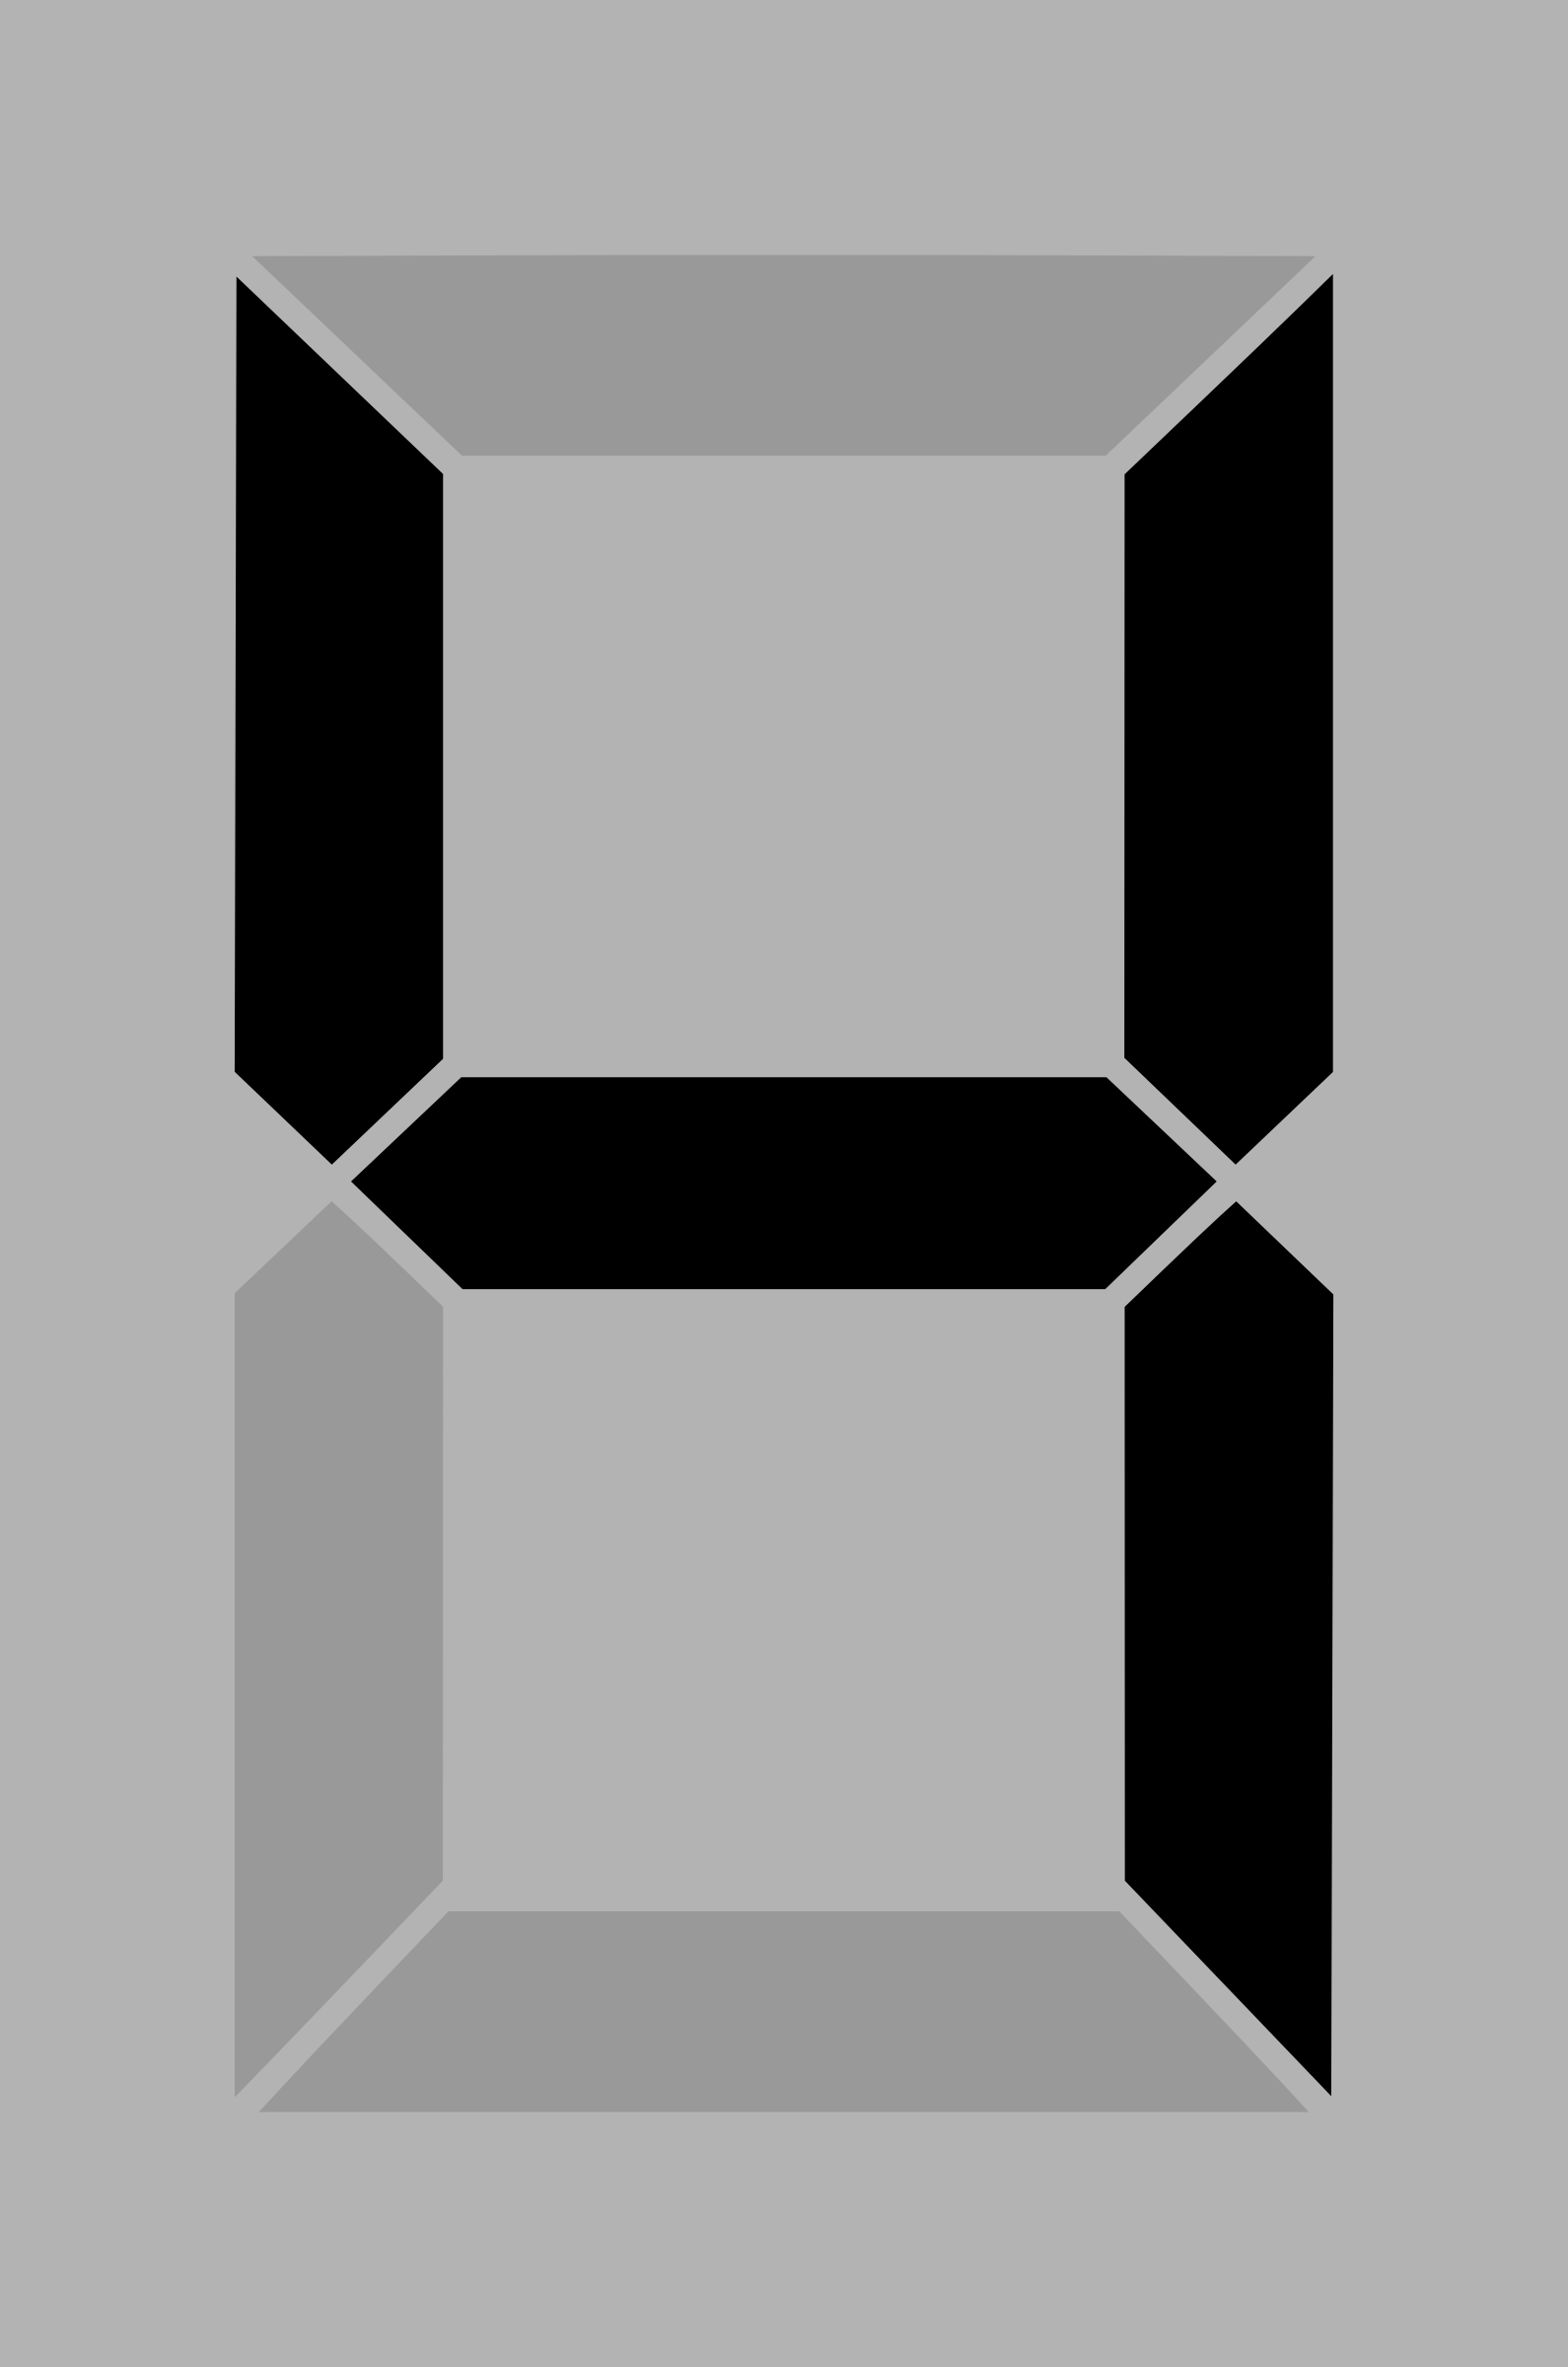 Seven segment display gray 4 by alex8664